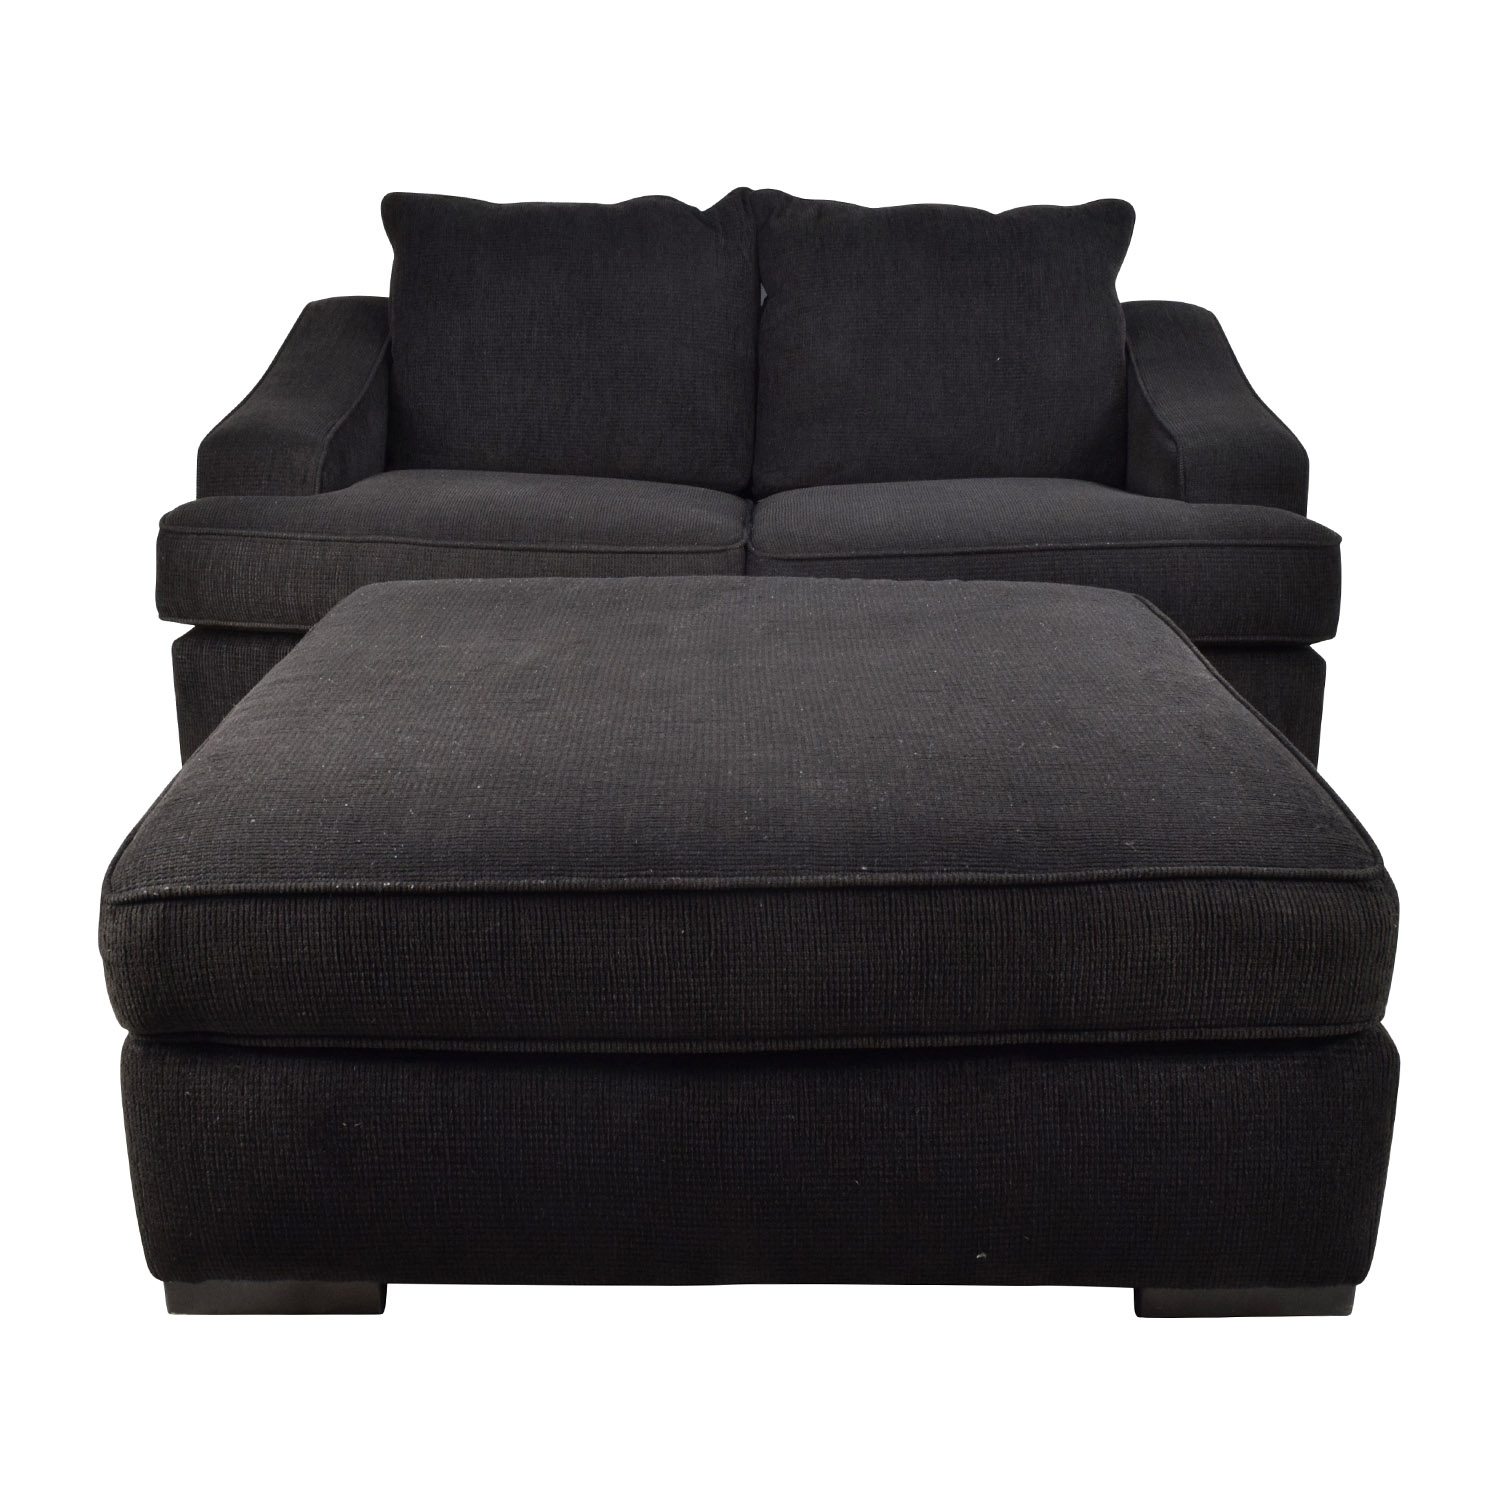 67% Off - Black Cloth Loveseat And Matching Oversized Ottoman / Sofas intended for Loveseats With Ottoman